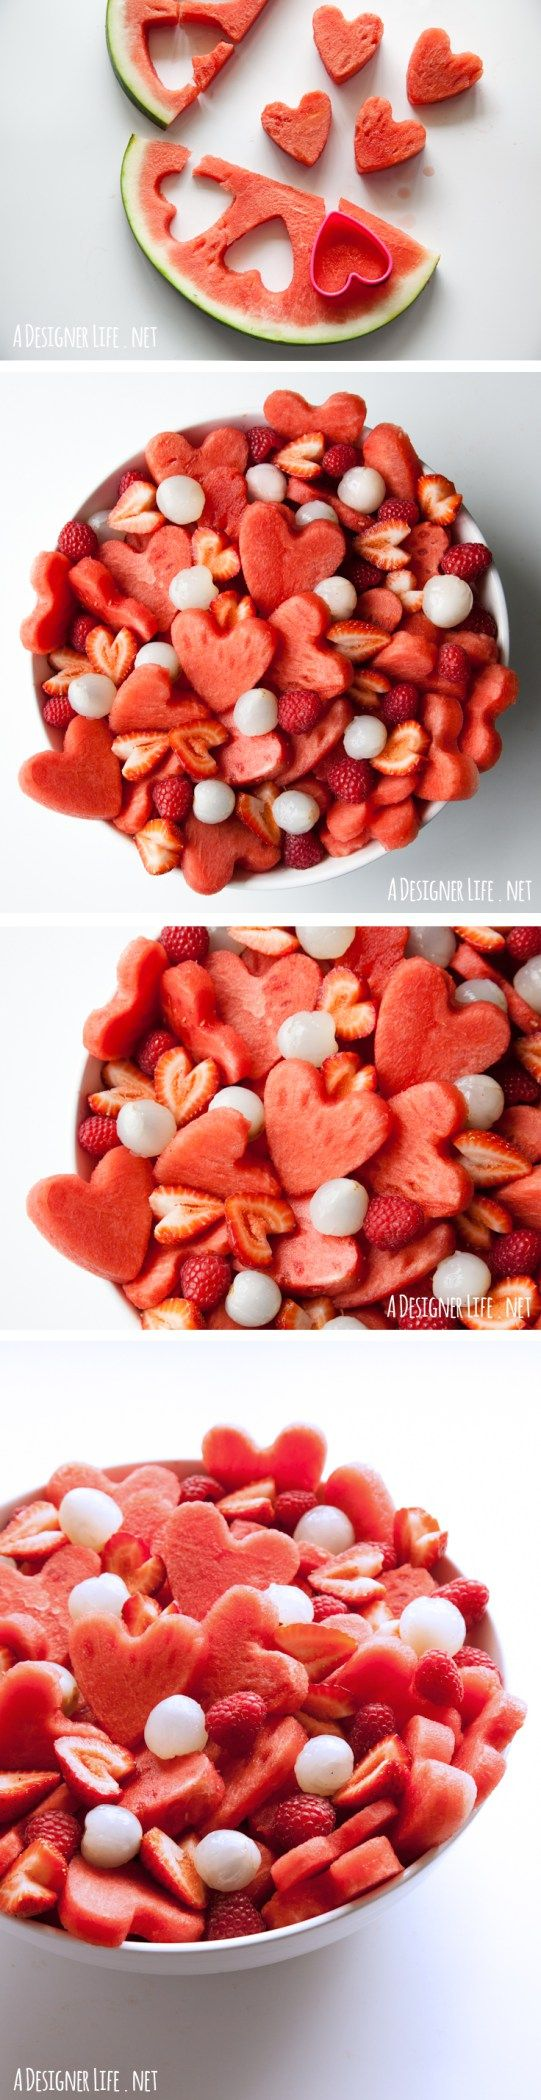 Watermelon heart fruit salad for Valentine's Day - made with a heart-shaped cookie cutter!